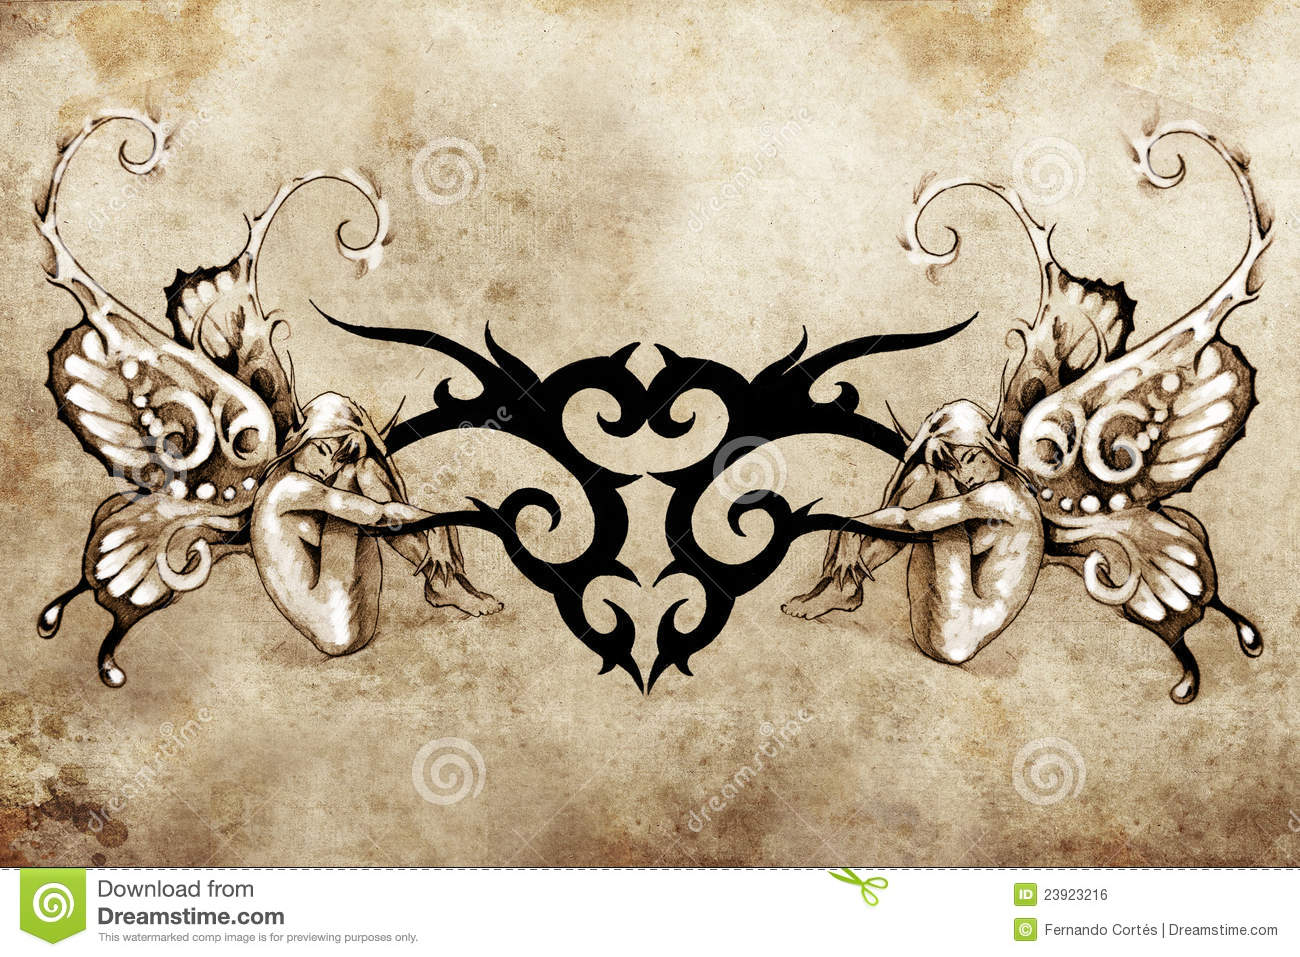 Art Design : Tattoo art design tribal with two nymphs stock